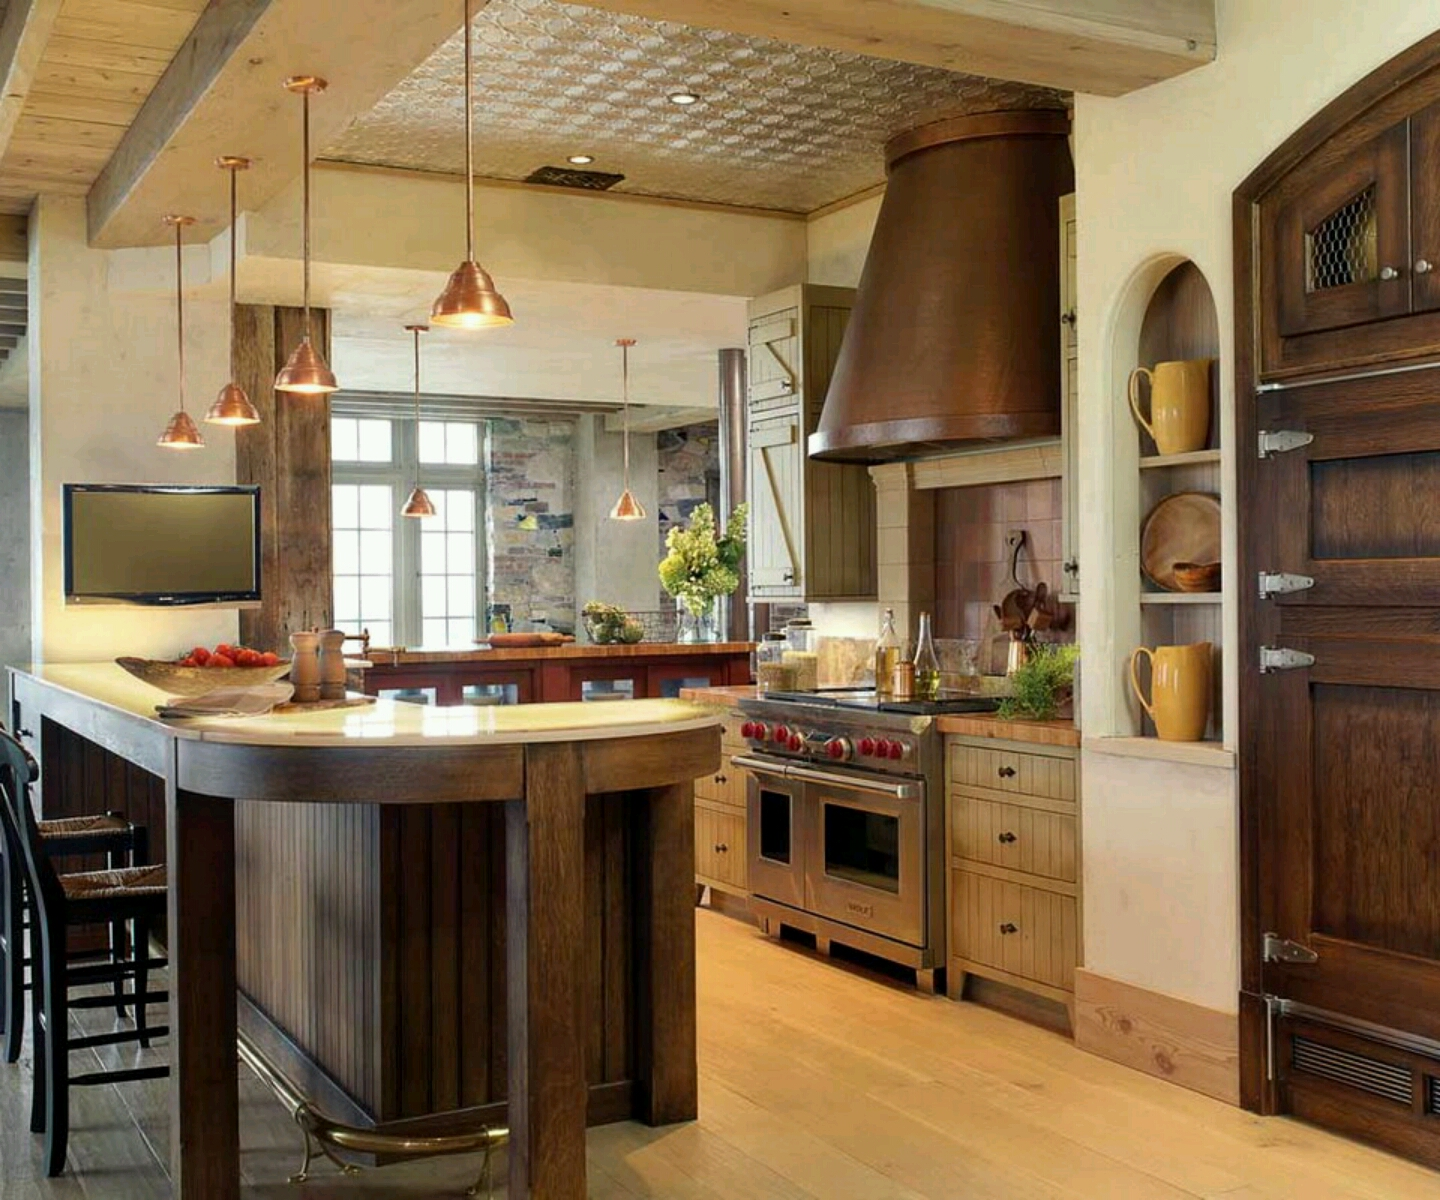 Pinterest Kitchen Design